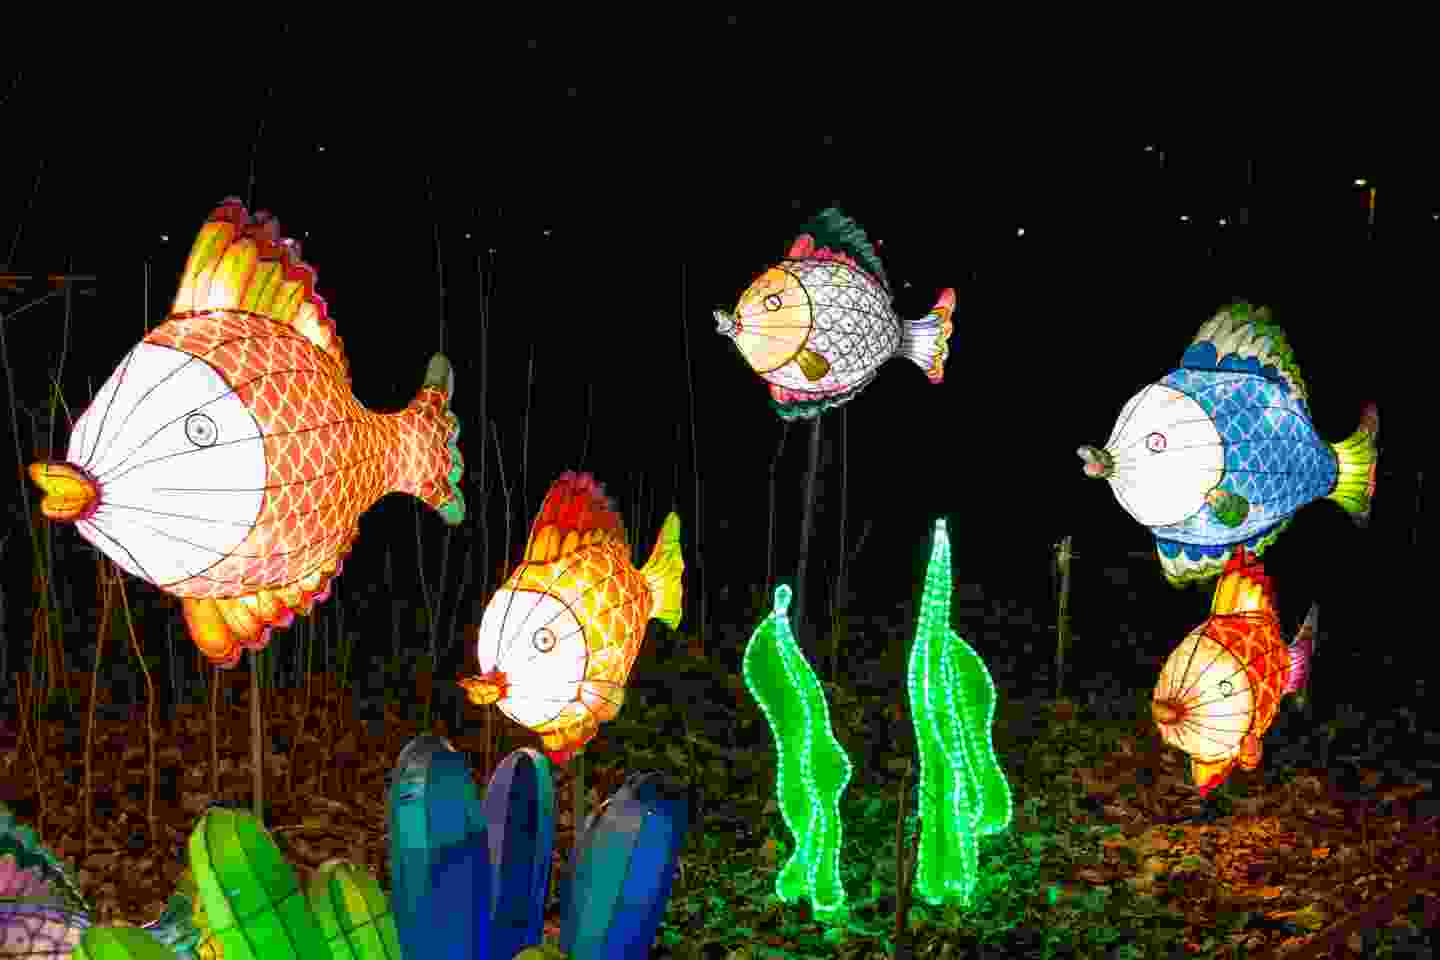 Chinese Fish Decorations (shutterstock)